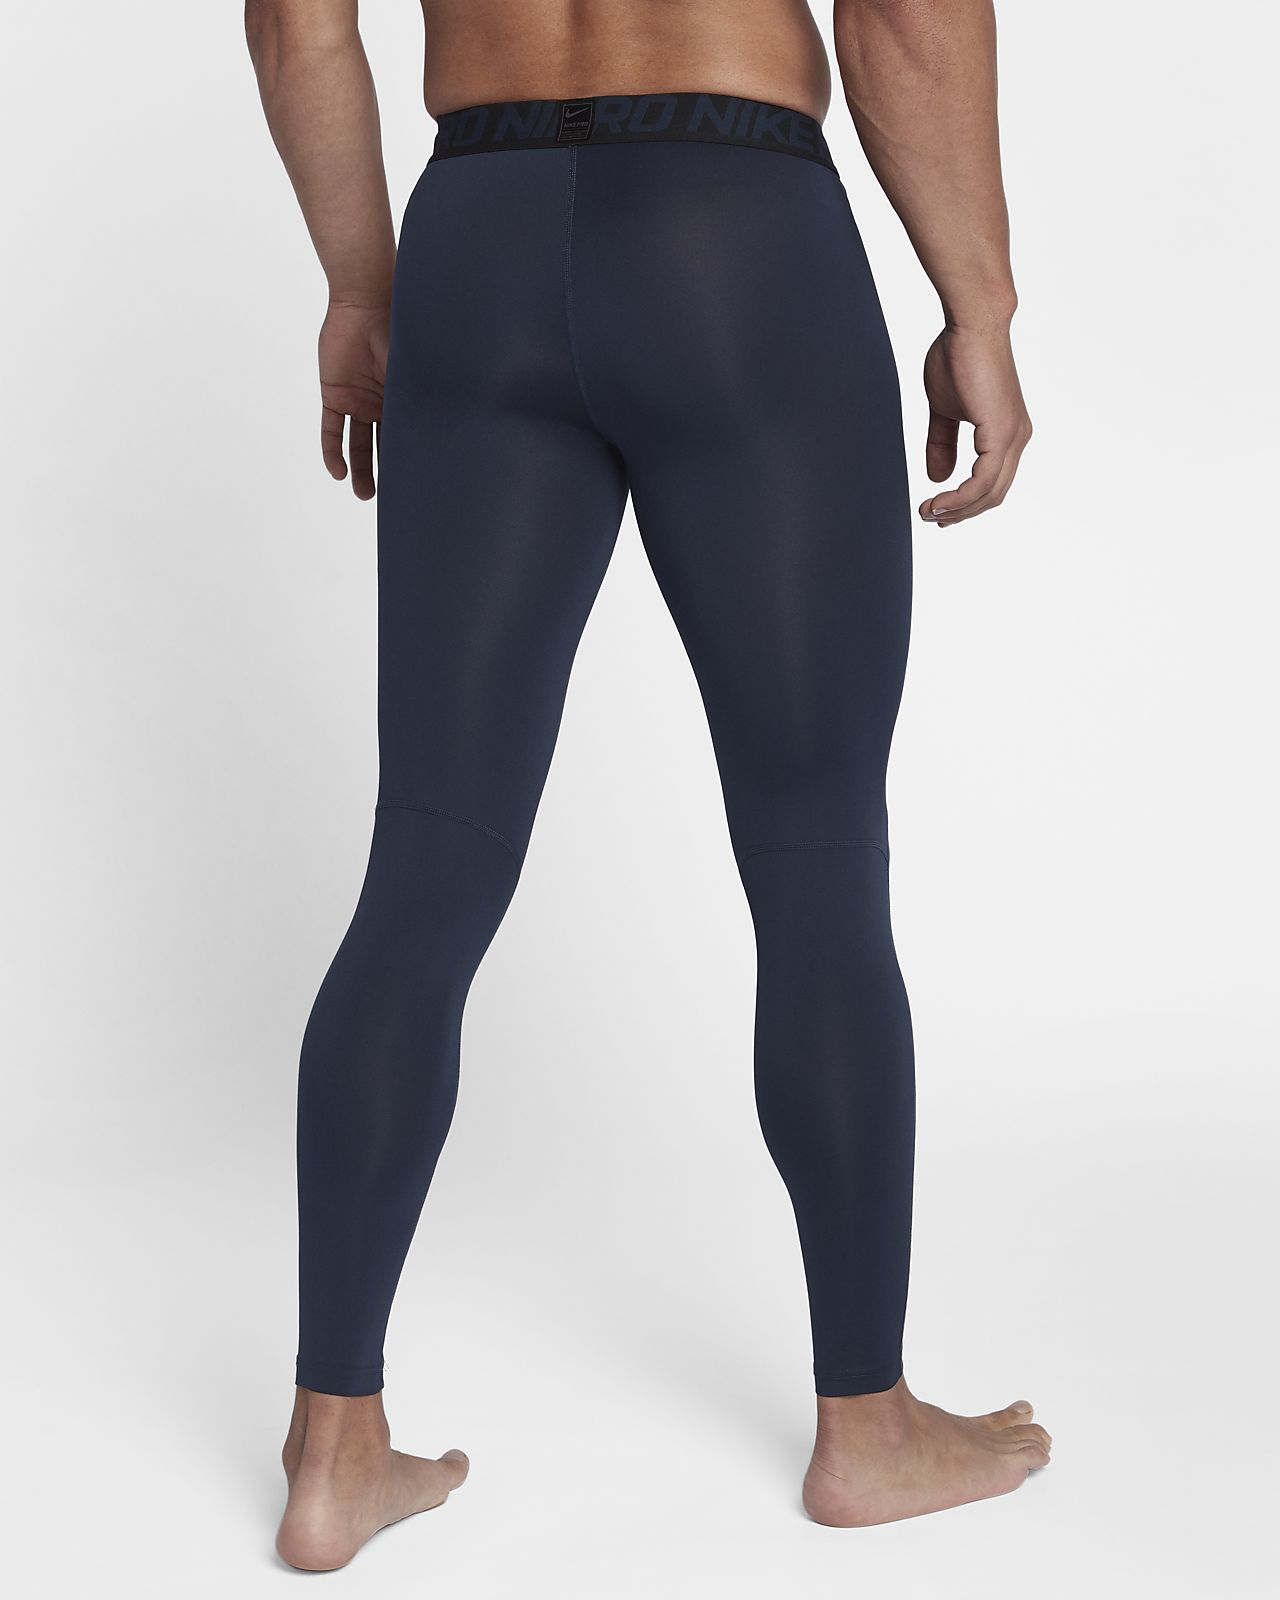 96ff74945 Low Resolution Nike Pro Men s Tights Nike Pro Men s Tights